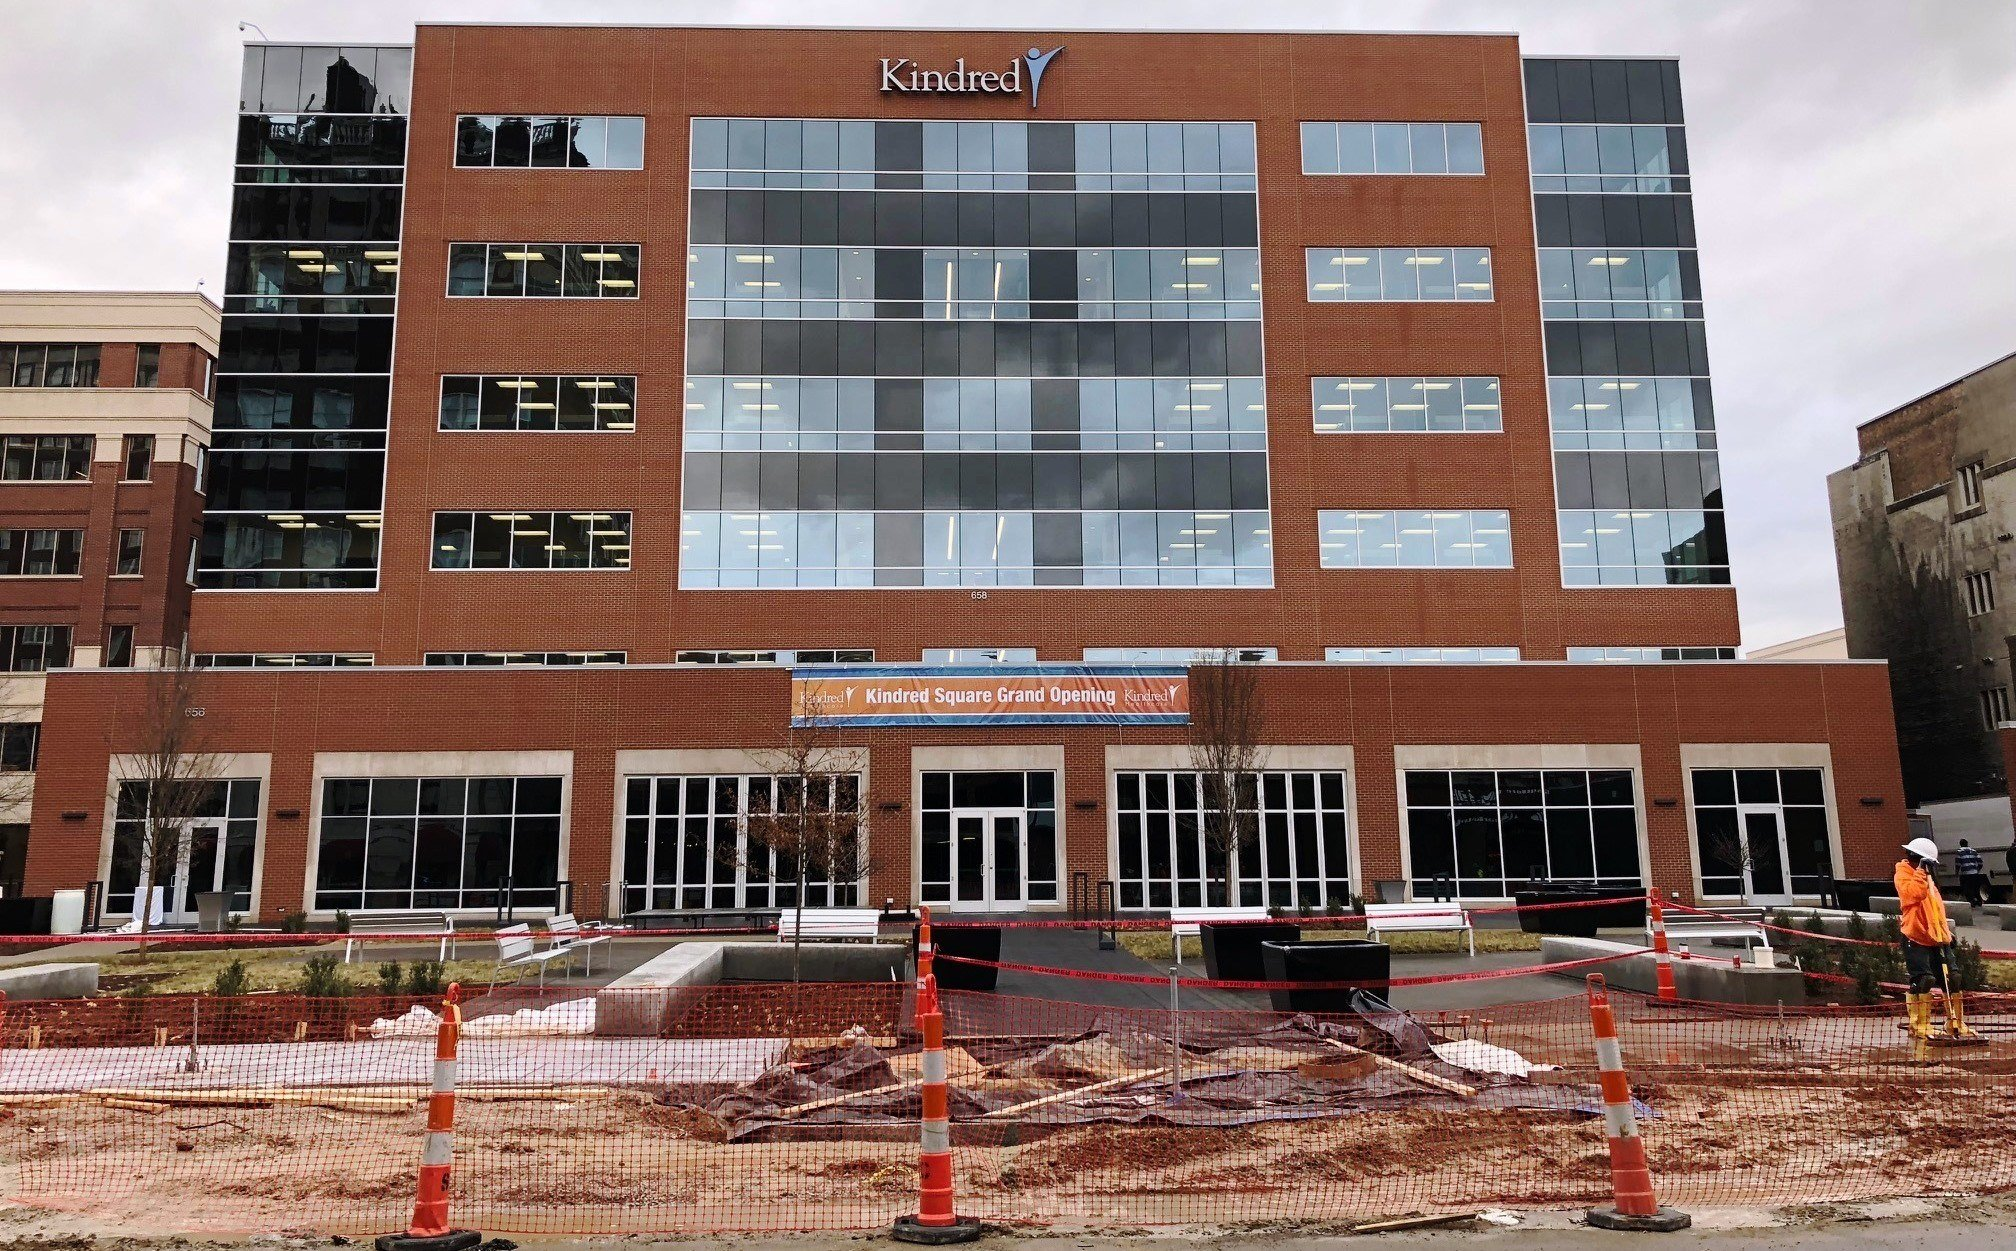 Kindred Healthcare's new corporate office building on S. 4th Street